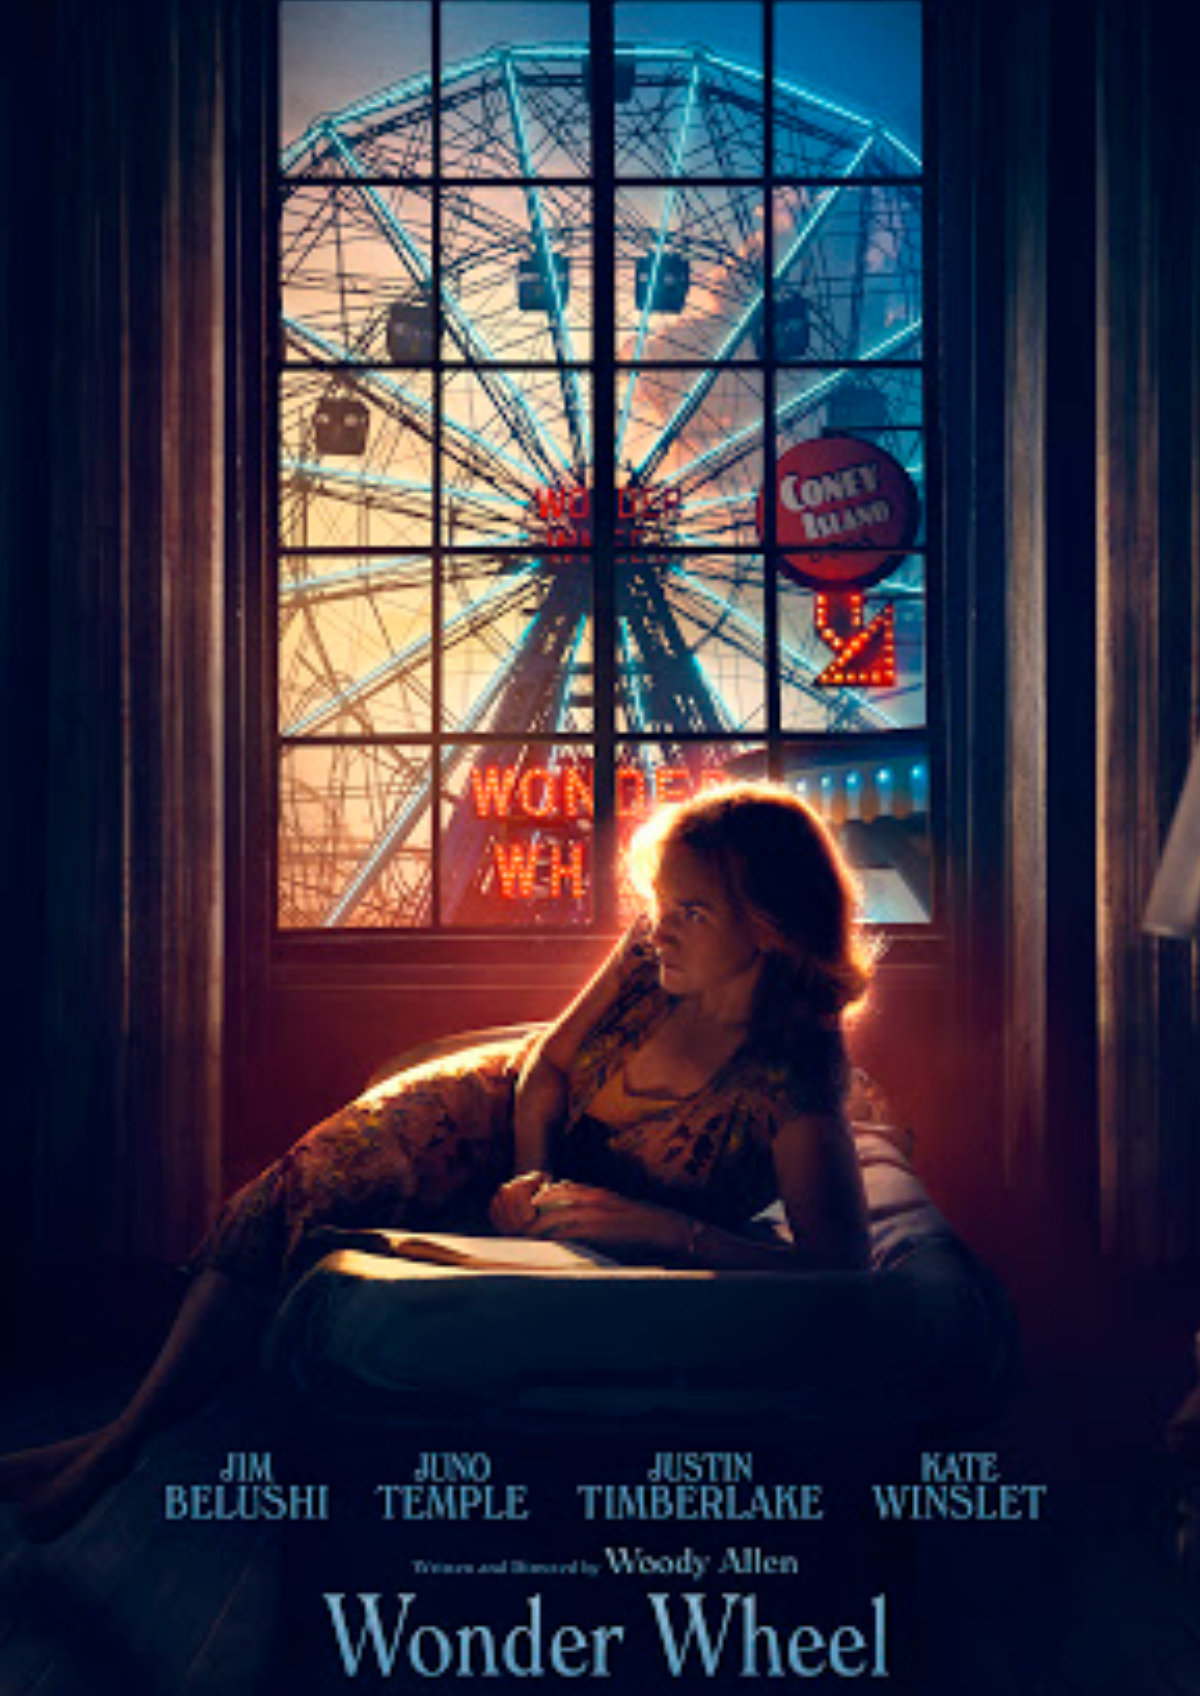 Poster for 'Wonder Wheel'